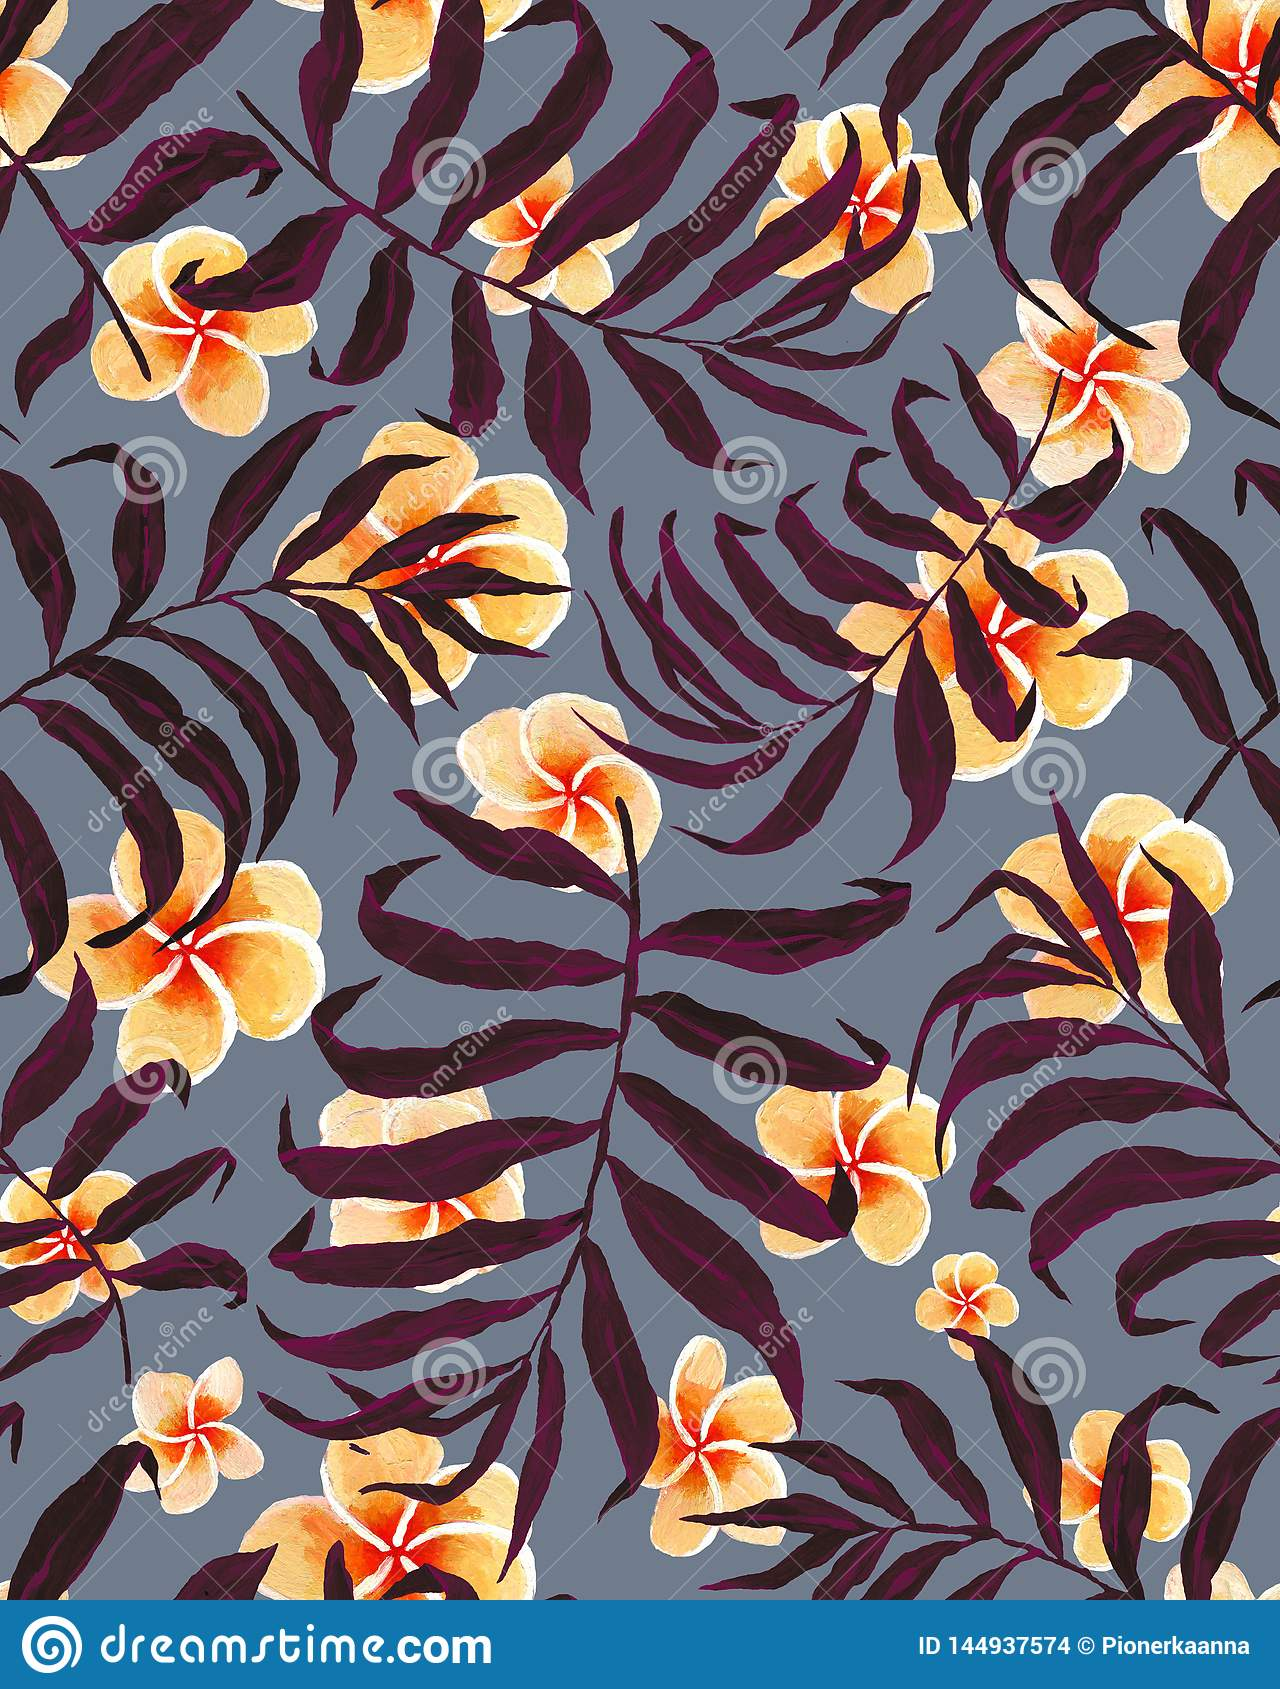 Tropical palm leaves pattern and plumeria flowers.